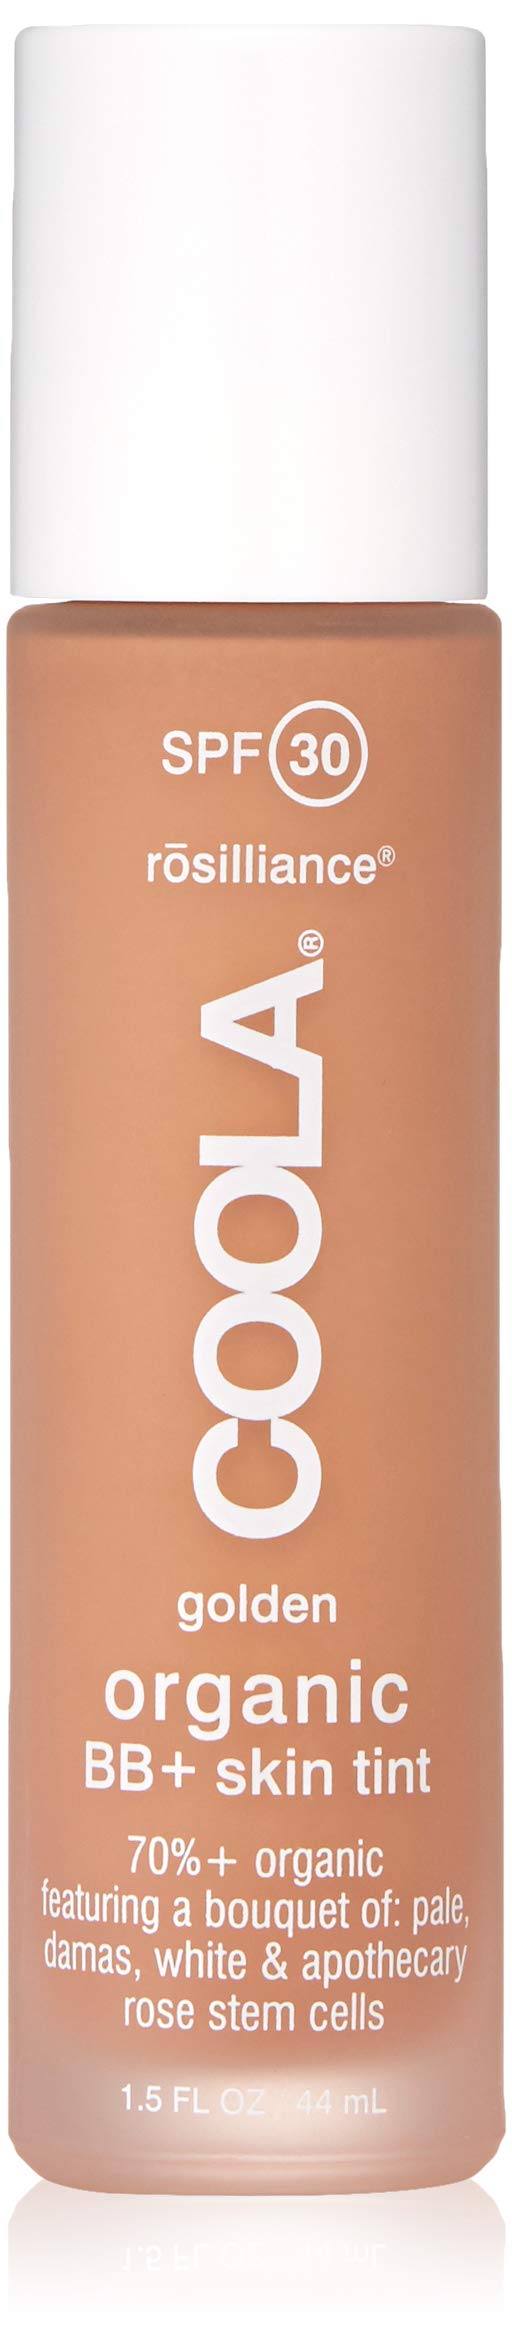 COOLA Rosilliance Mineral BB+ Cream Tinted Organic Sunscreen | Broad Spectrum SPF 30 | Vegan | Water-Resistant | Ultra-Moisturizing | Antioxidant Enriched | Golden by Coola Suncare